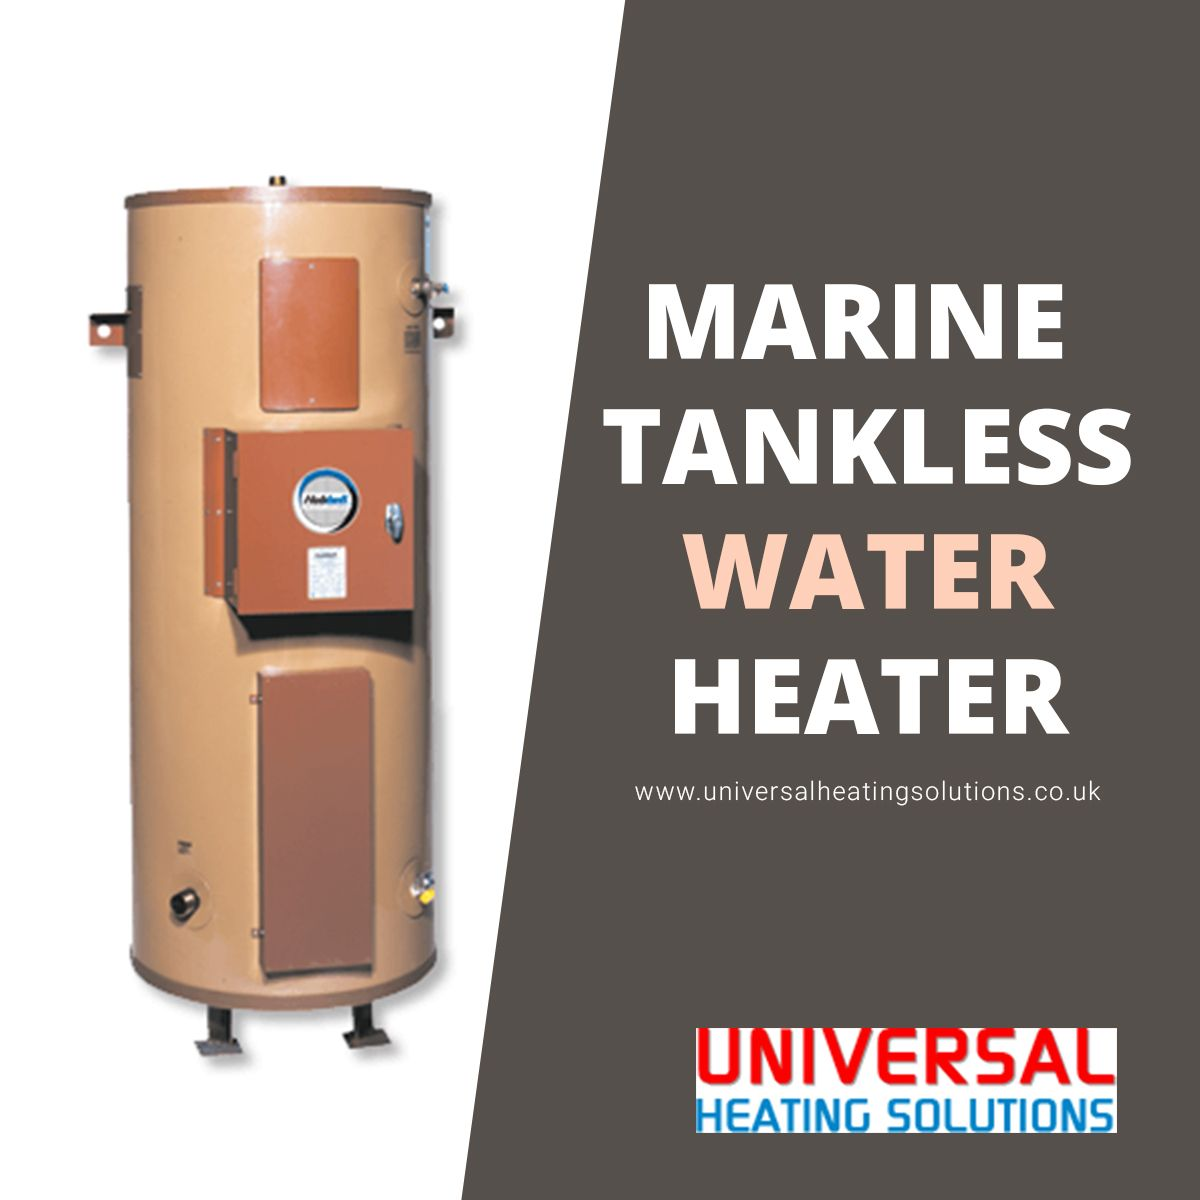 Universal Heating Solutions Is A Trusted Company For The Marine